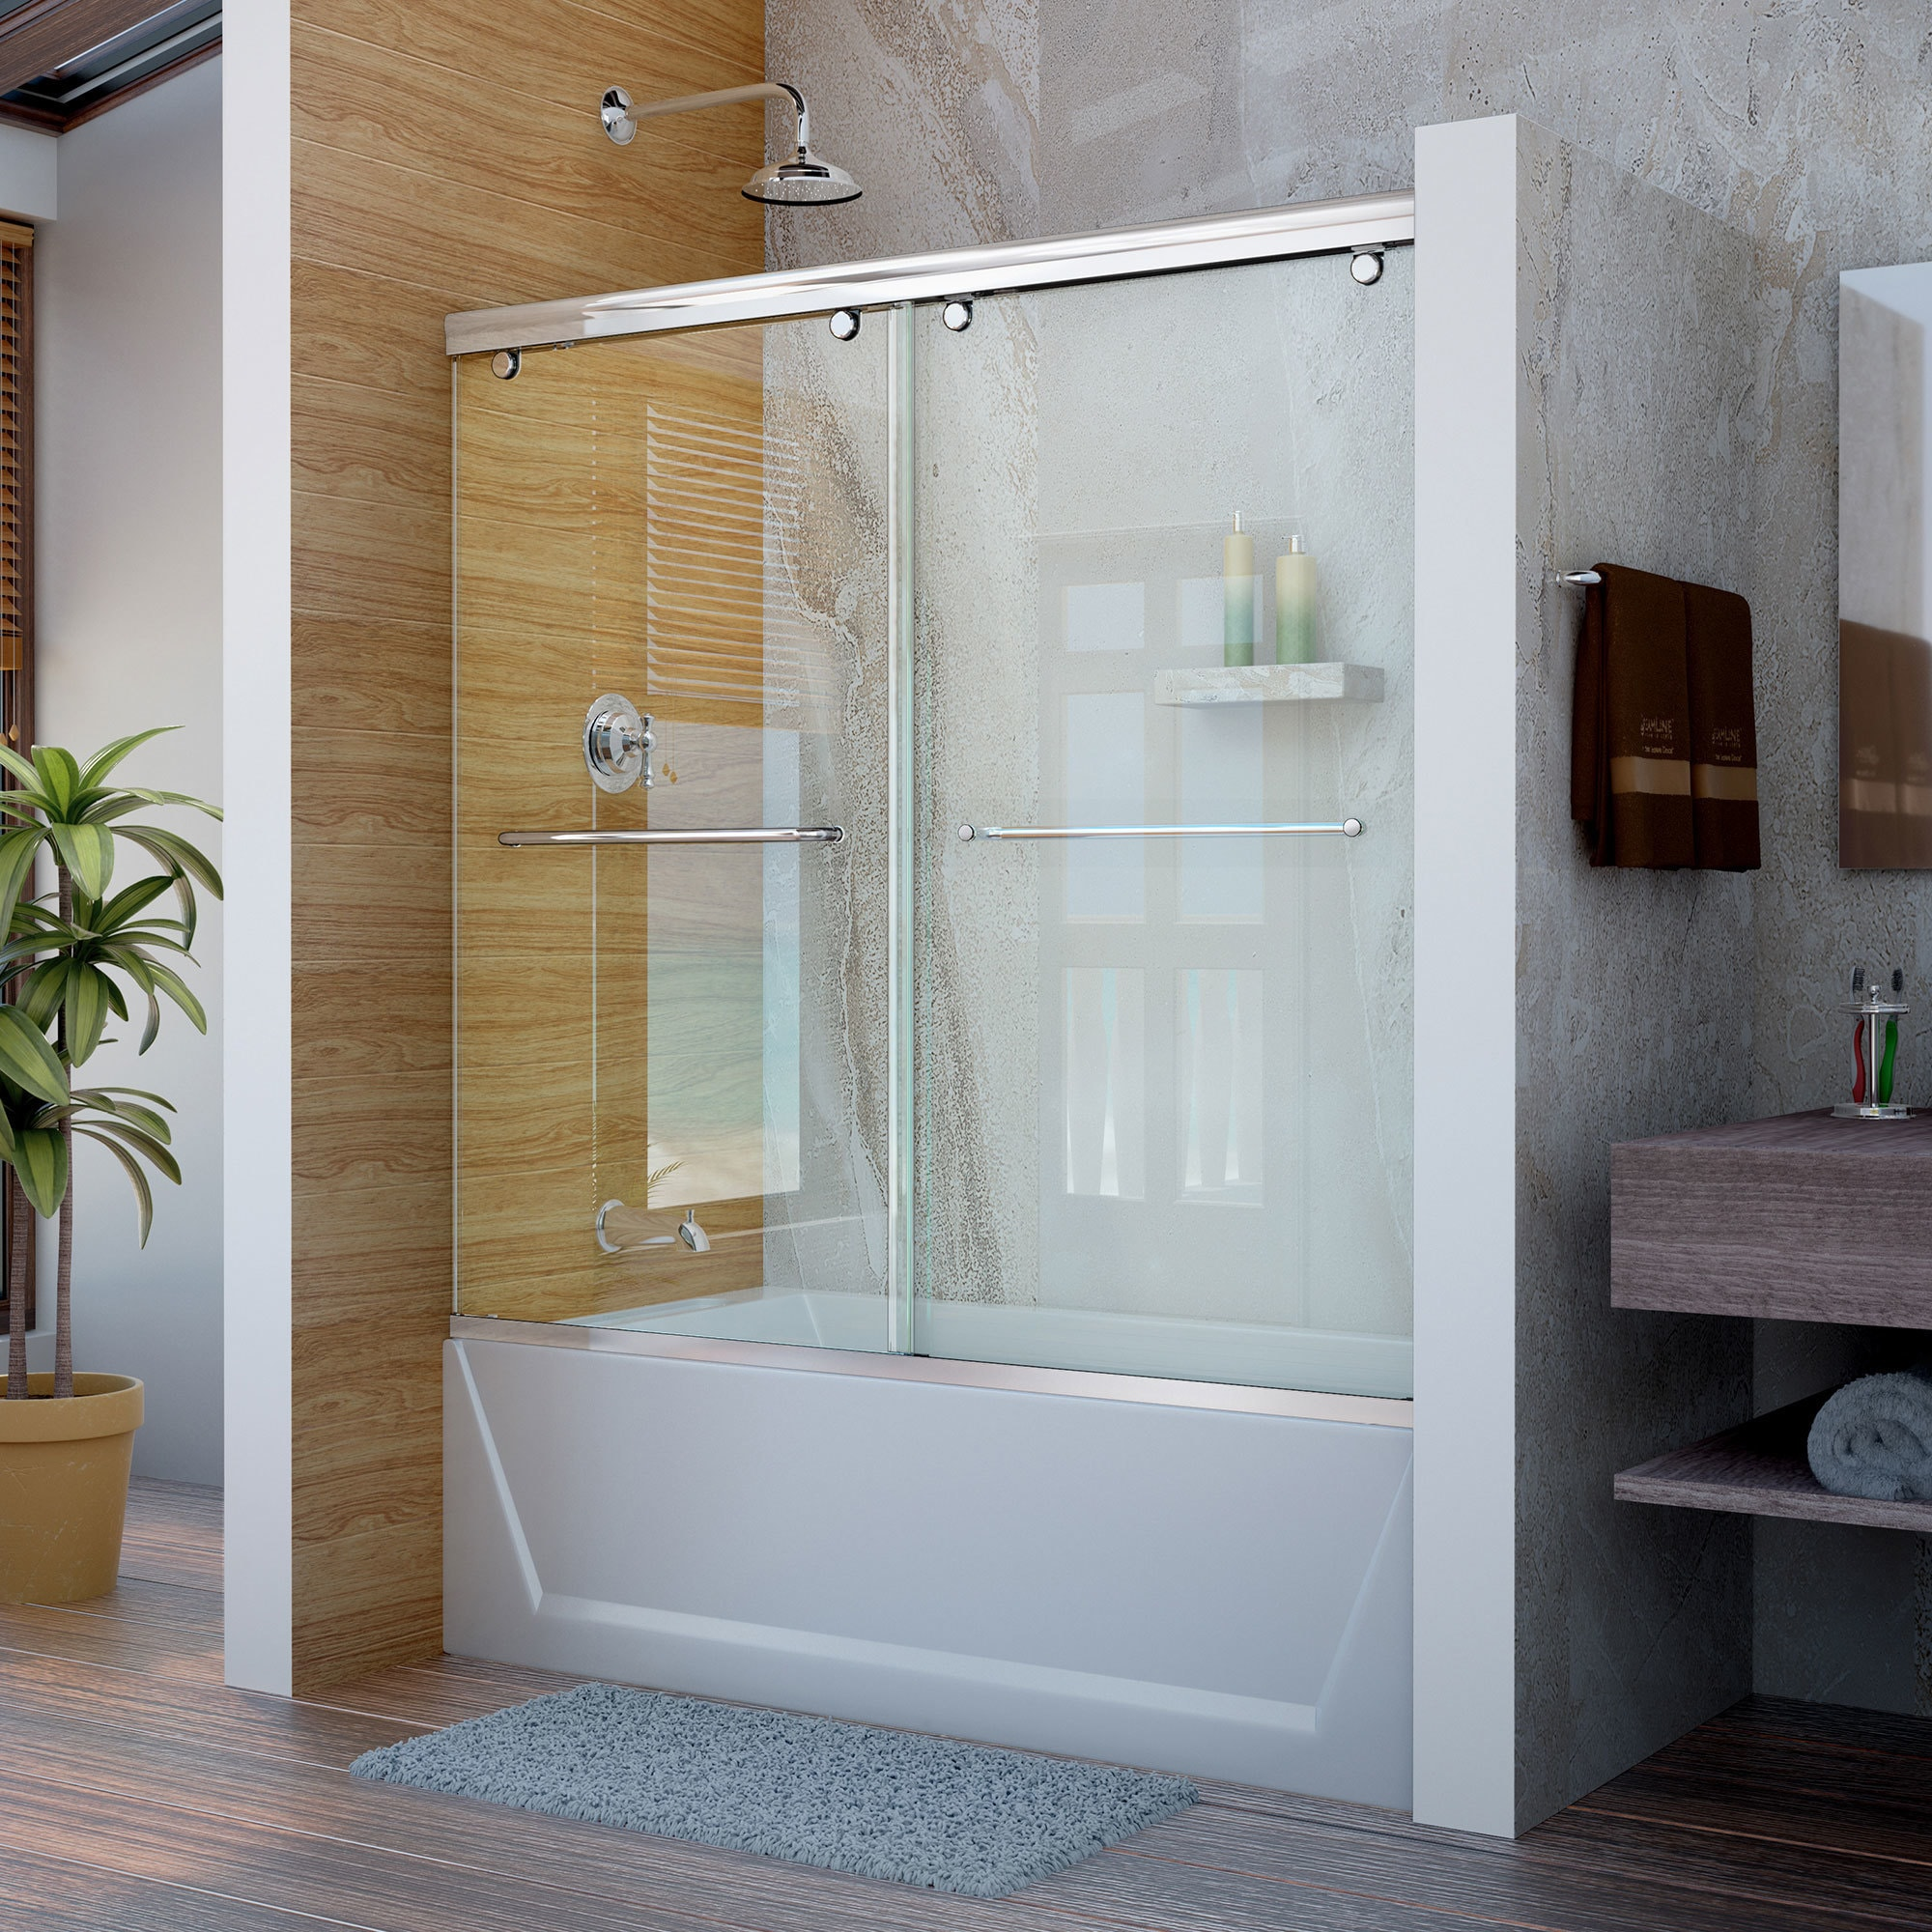 DreamLine Charisma 56 - 60 in. W x 58 in. H Bypass Sliding Tub Door ...